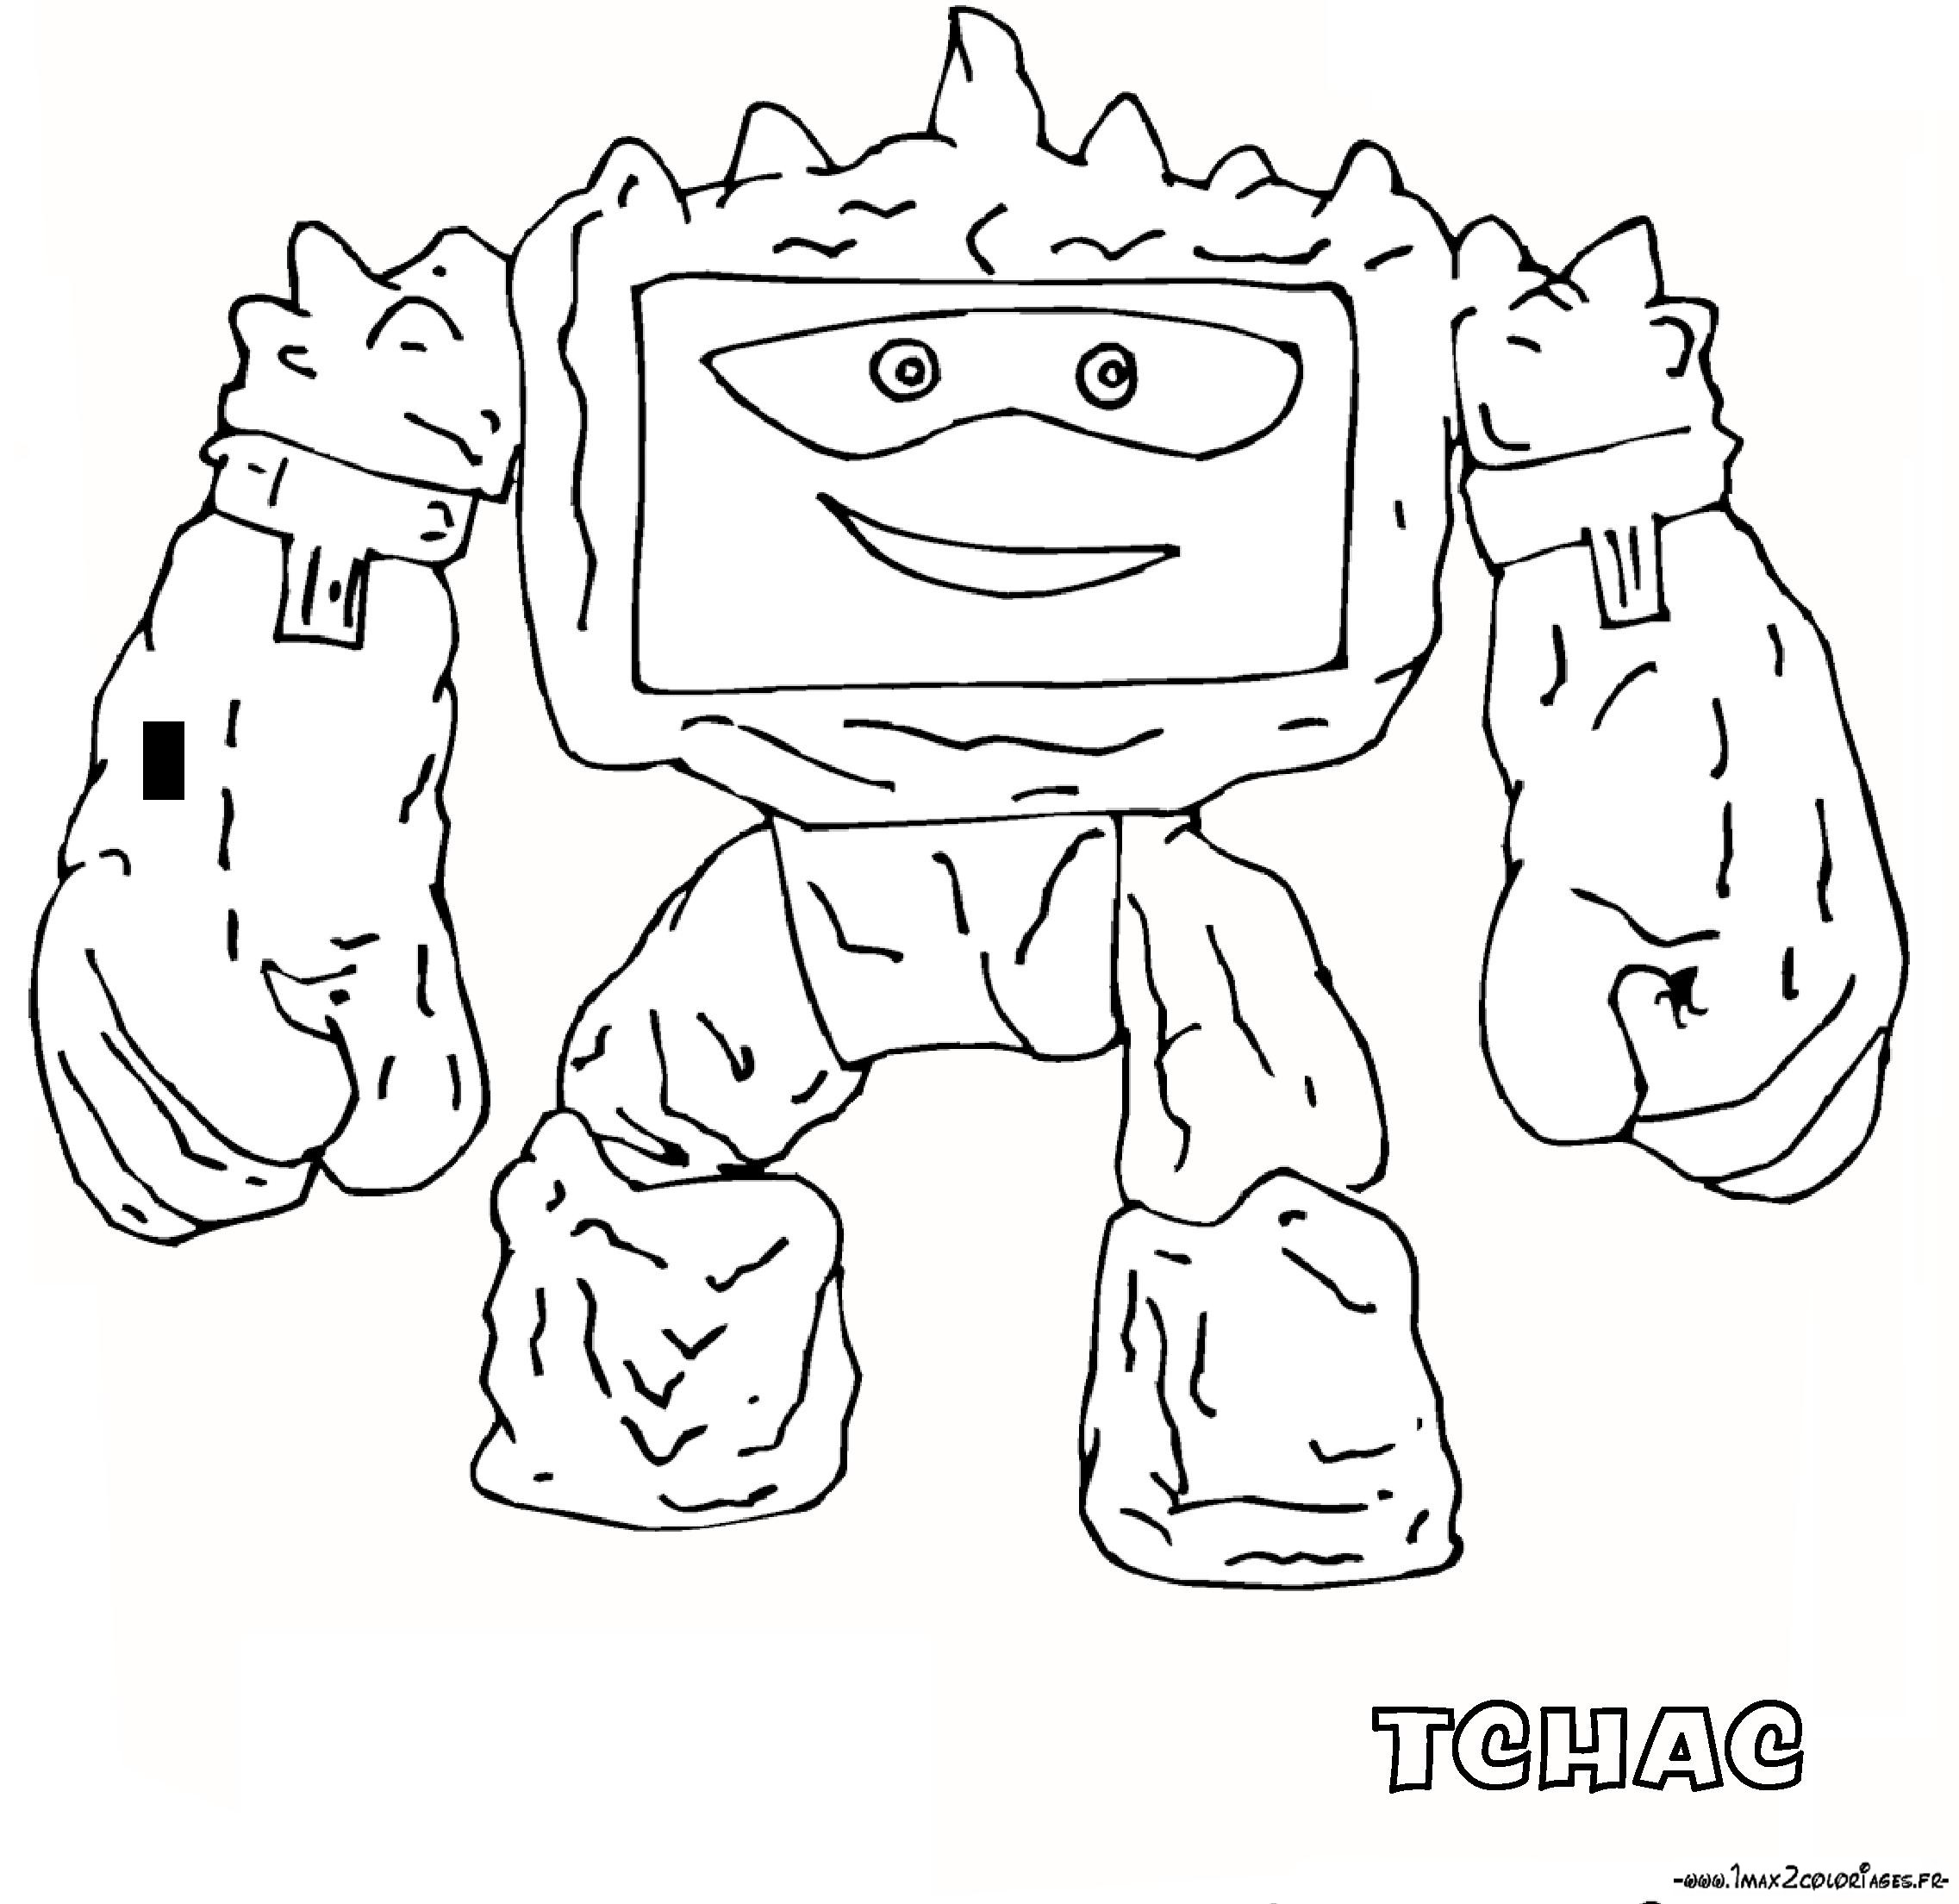 Amazing Coloriage Toy Story 3 Chien Zip Zag Illustration - Coloring ...